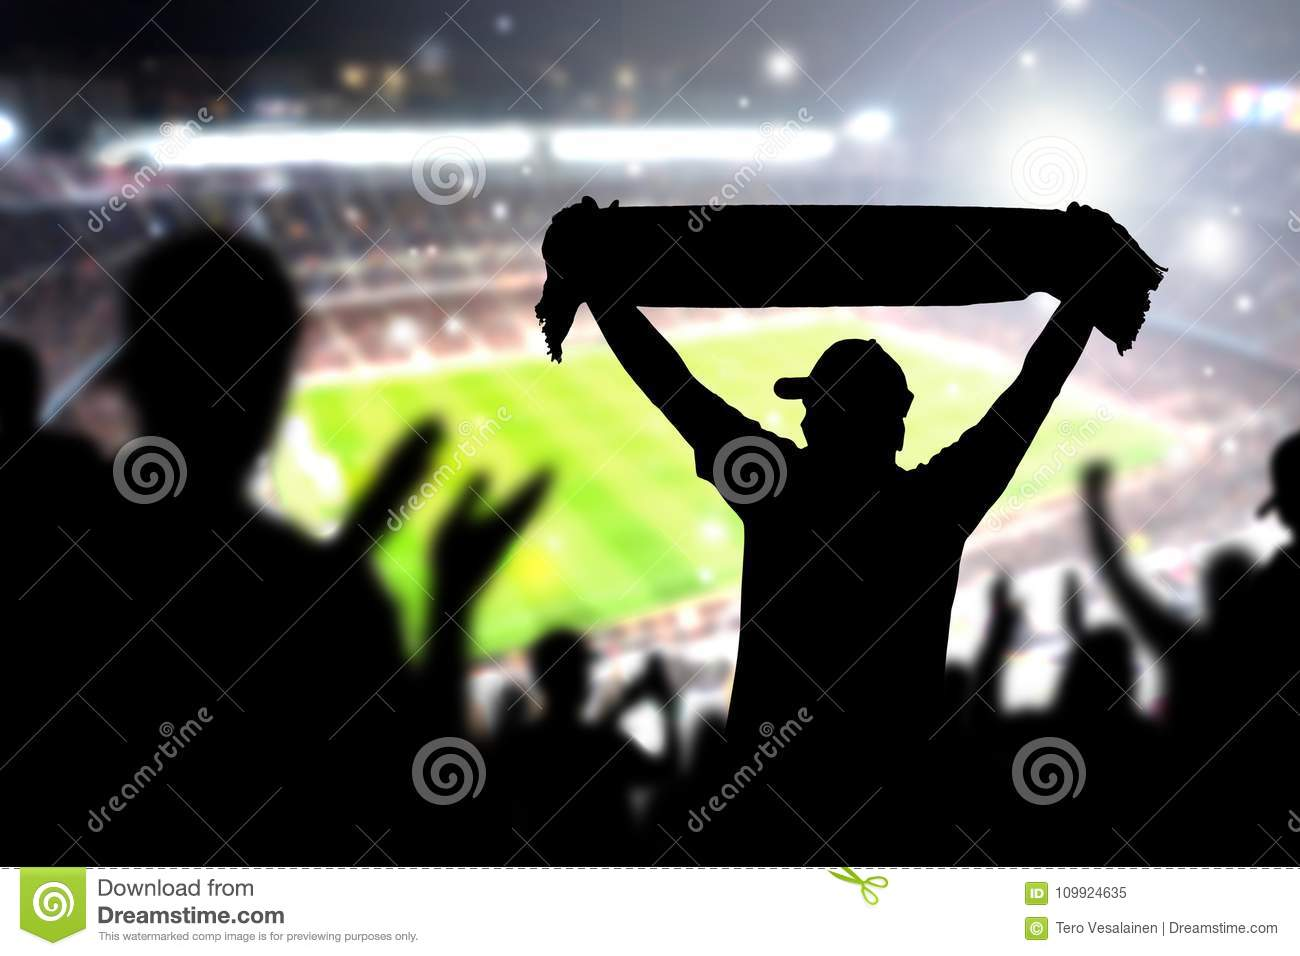 Crowd and fans in football stadium. People in soccer game.